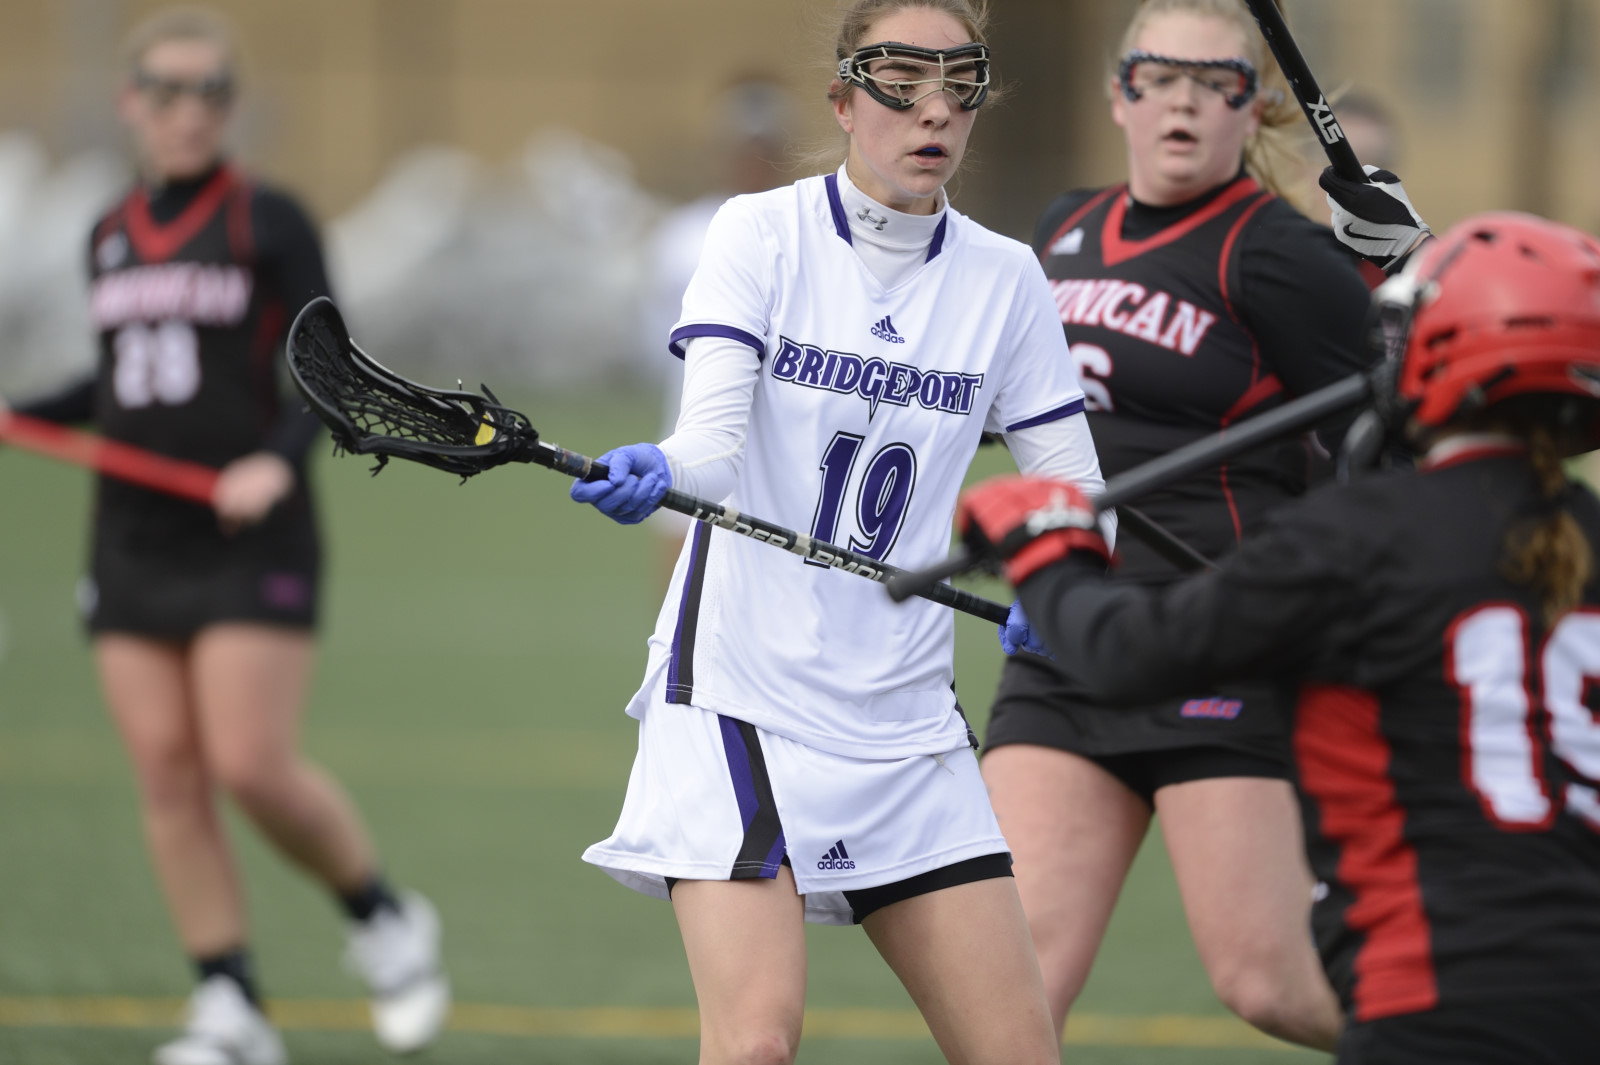 UB Nets Final Three Goals Of The Game To Post 13-10 Women's Lacrosse Win At Caldwell